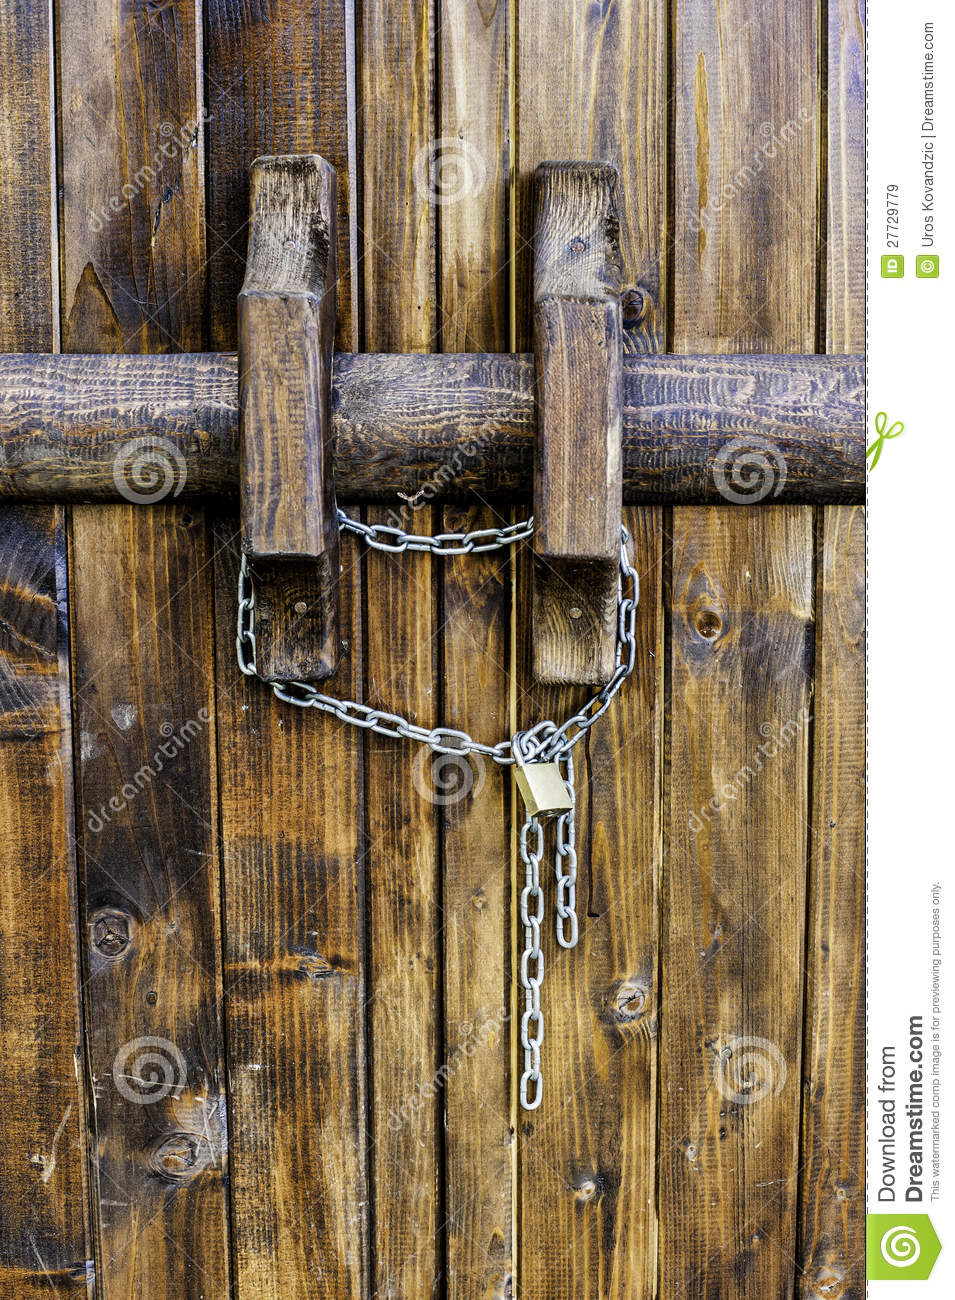 Le Meilleur Old Wooden Door And Lock Stock Image Image Of Wood Ce Mois Ci